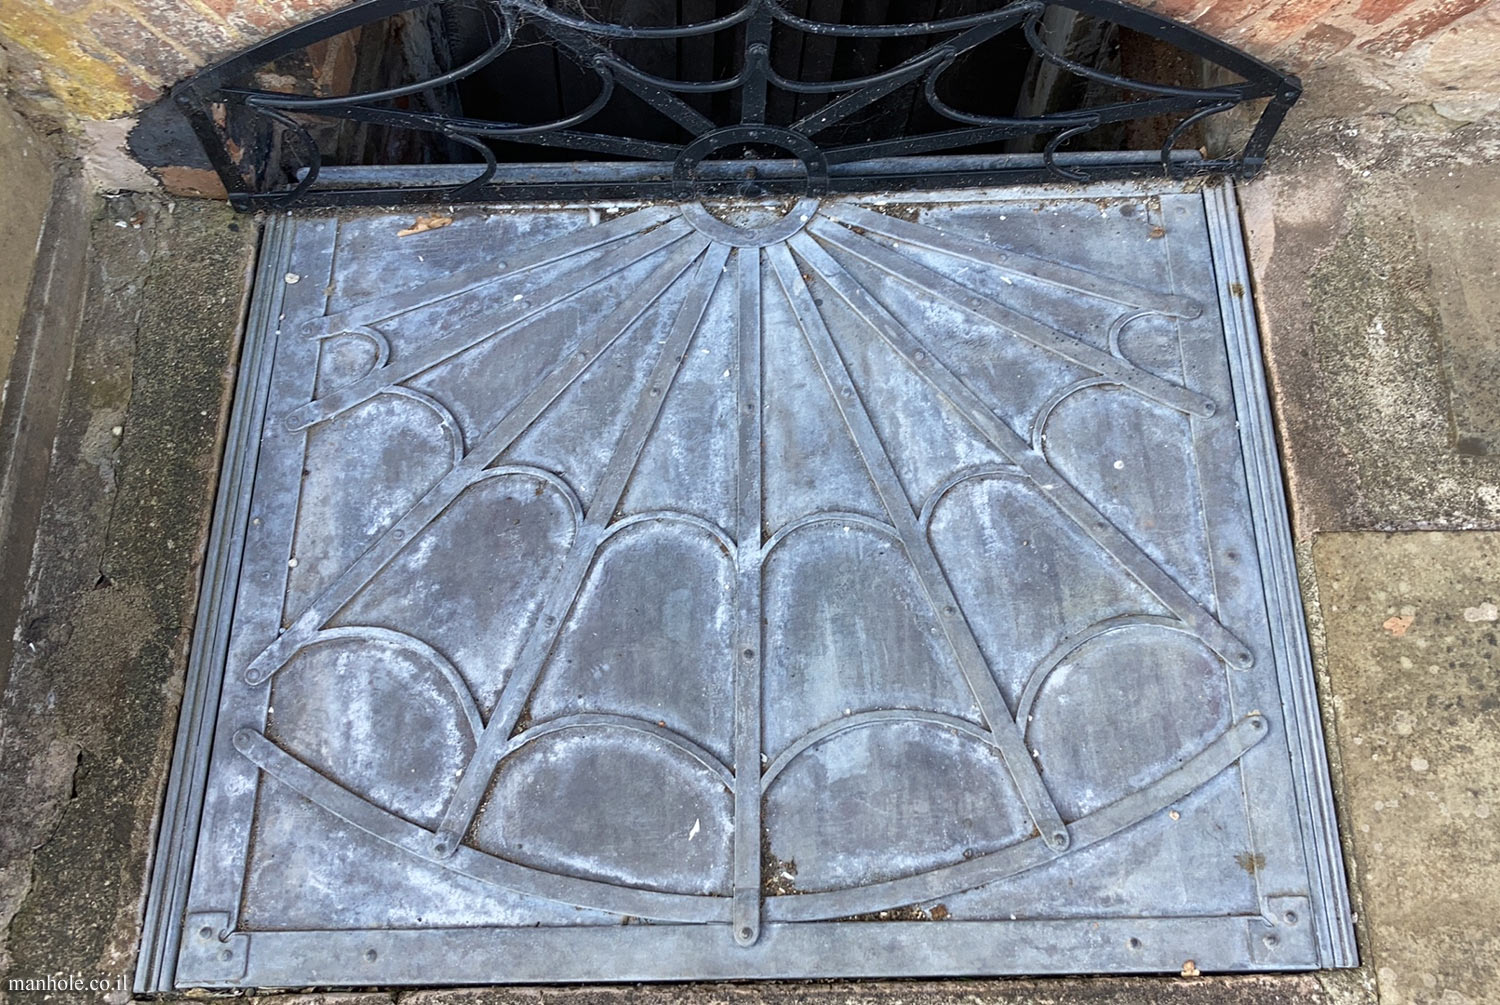 Ludlow - A lid with a background resembling a cobweb and a drain opening at the end